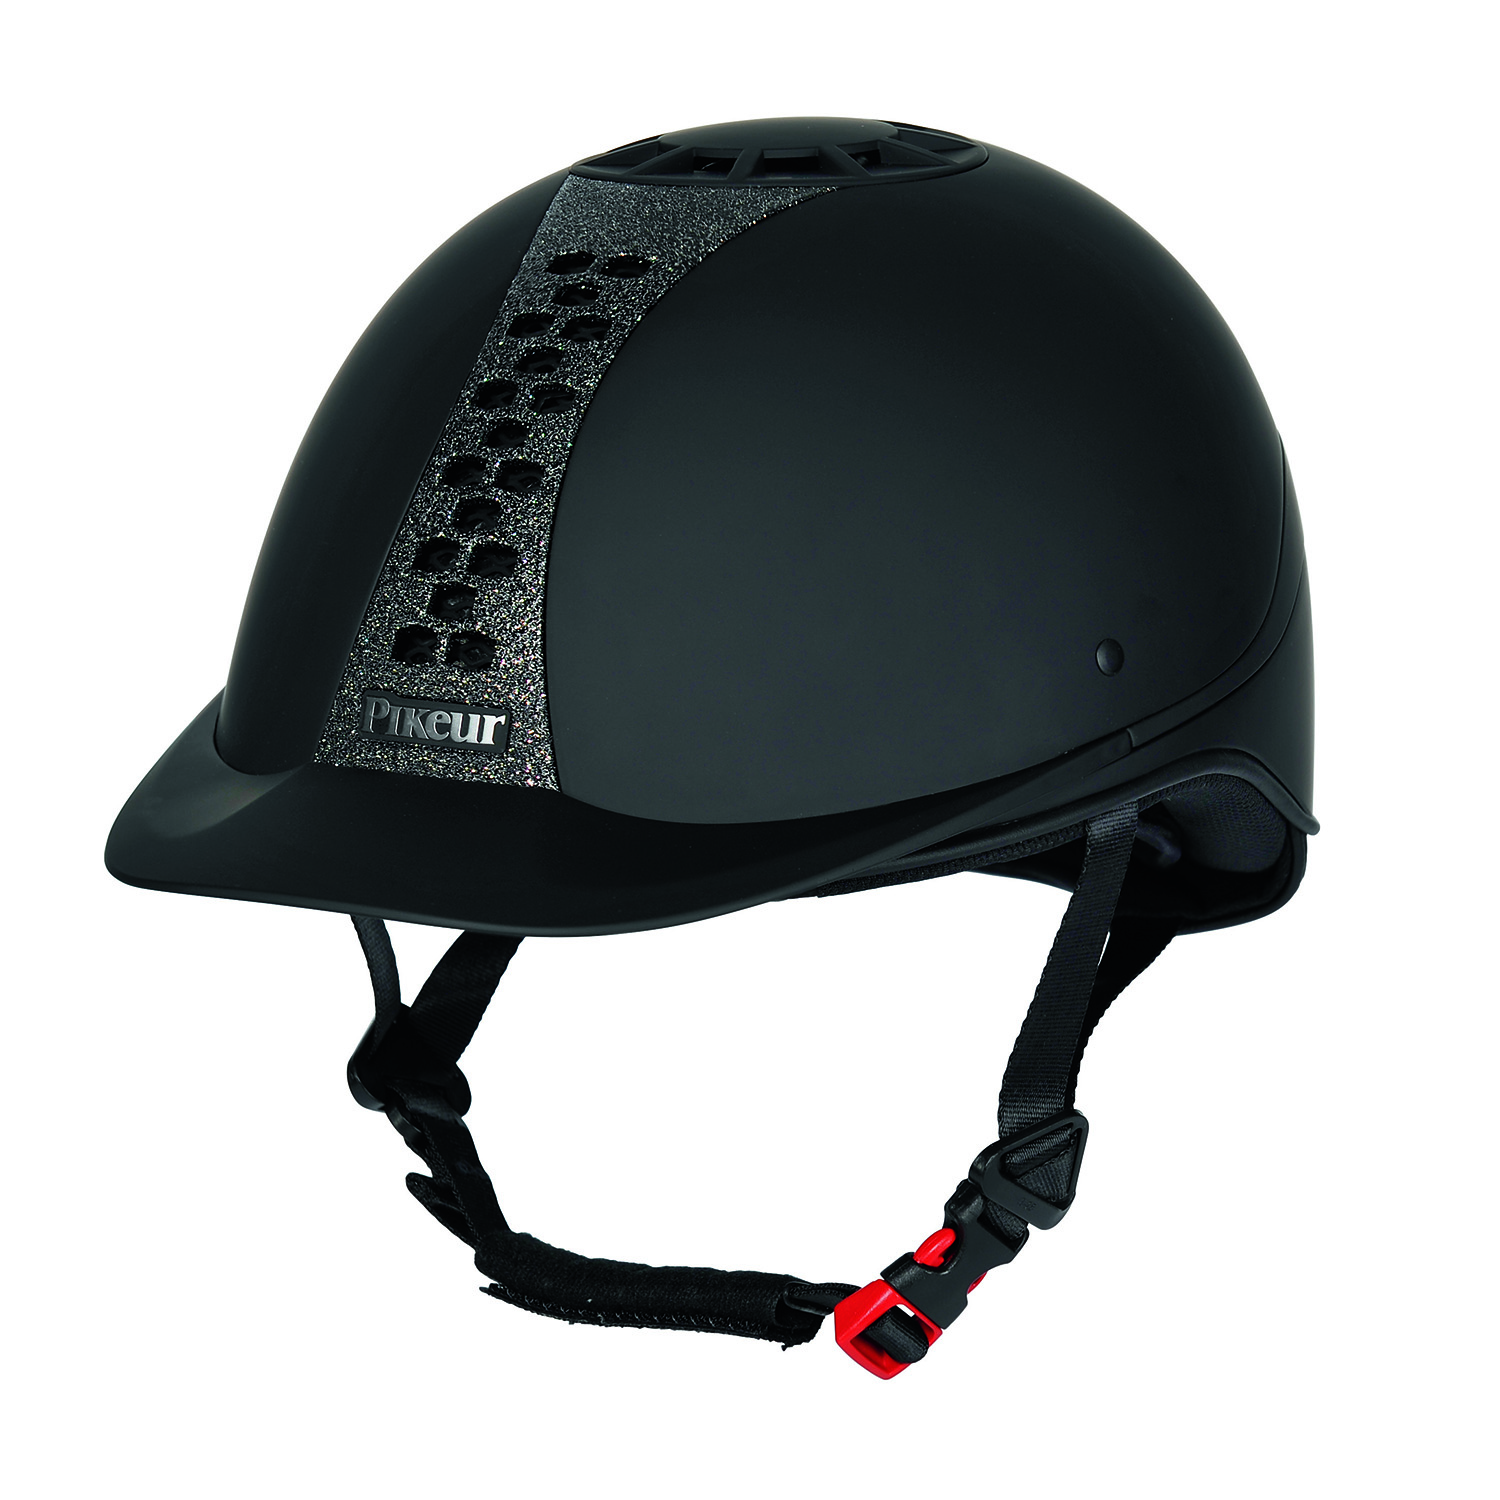 Pikeur Pro-Safe Classic Brilliant Helmet Black